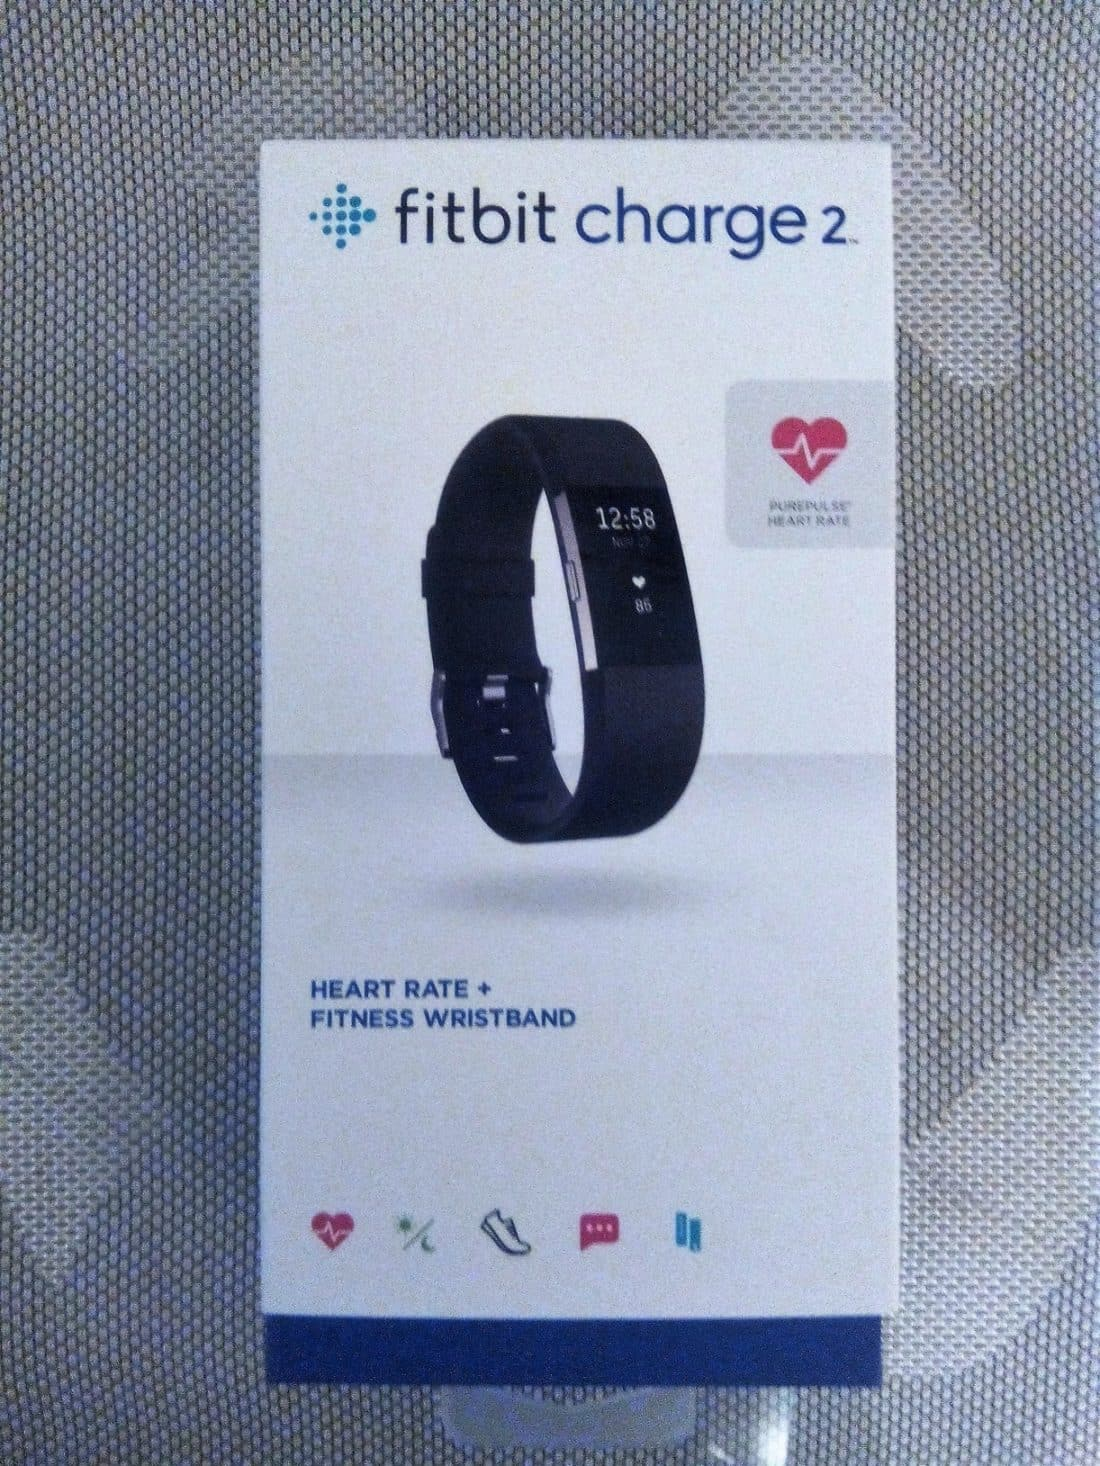 fitbit charge 2 bracelet fitbit charge 2 prix fitbit charge 2 avis fitbit charge 2 test fitbit charge 2 rose fitbit charge 2 lavande fitbit charge 2 taille fitbit charge 2 amazon